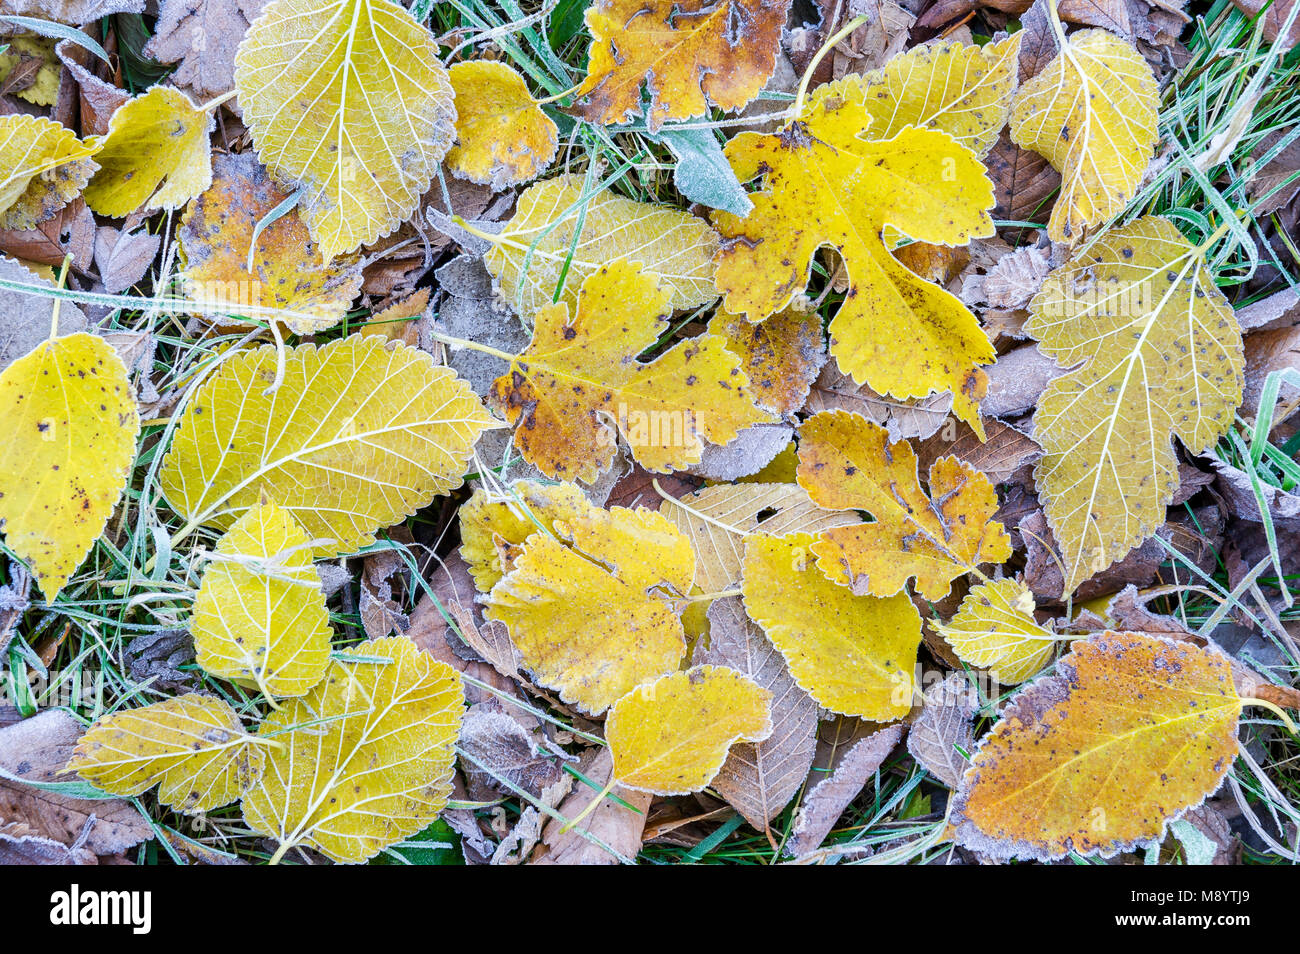 Frosted Bigtooth Aspen & Mulberry leaves, late Autumn, Fort Snelling SP, MN, USA, by Dominique Braud/Dembinsky Photo Stock Photo